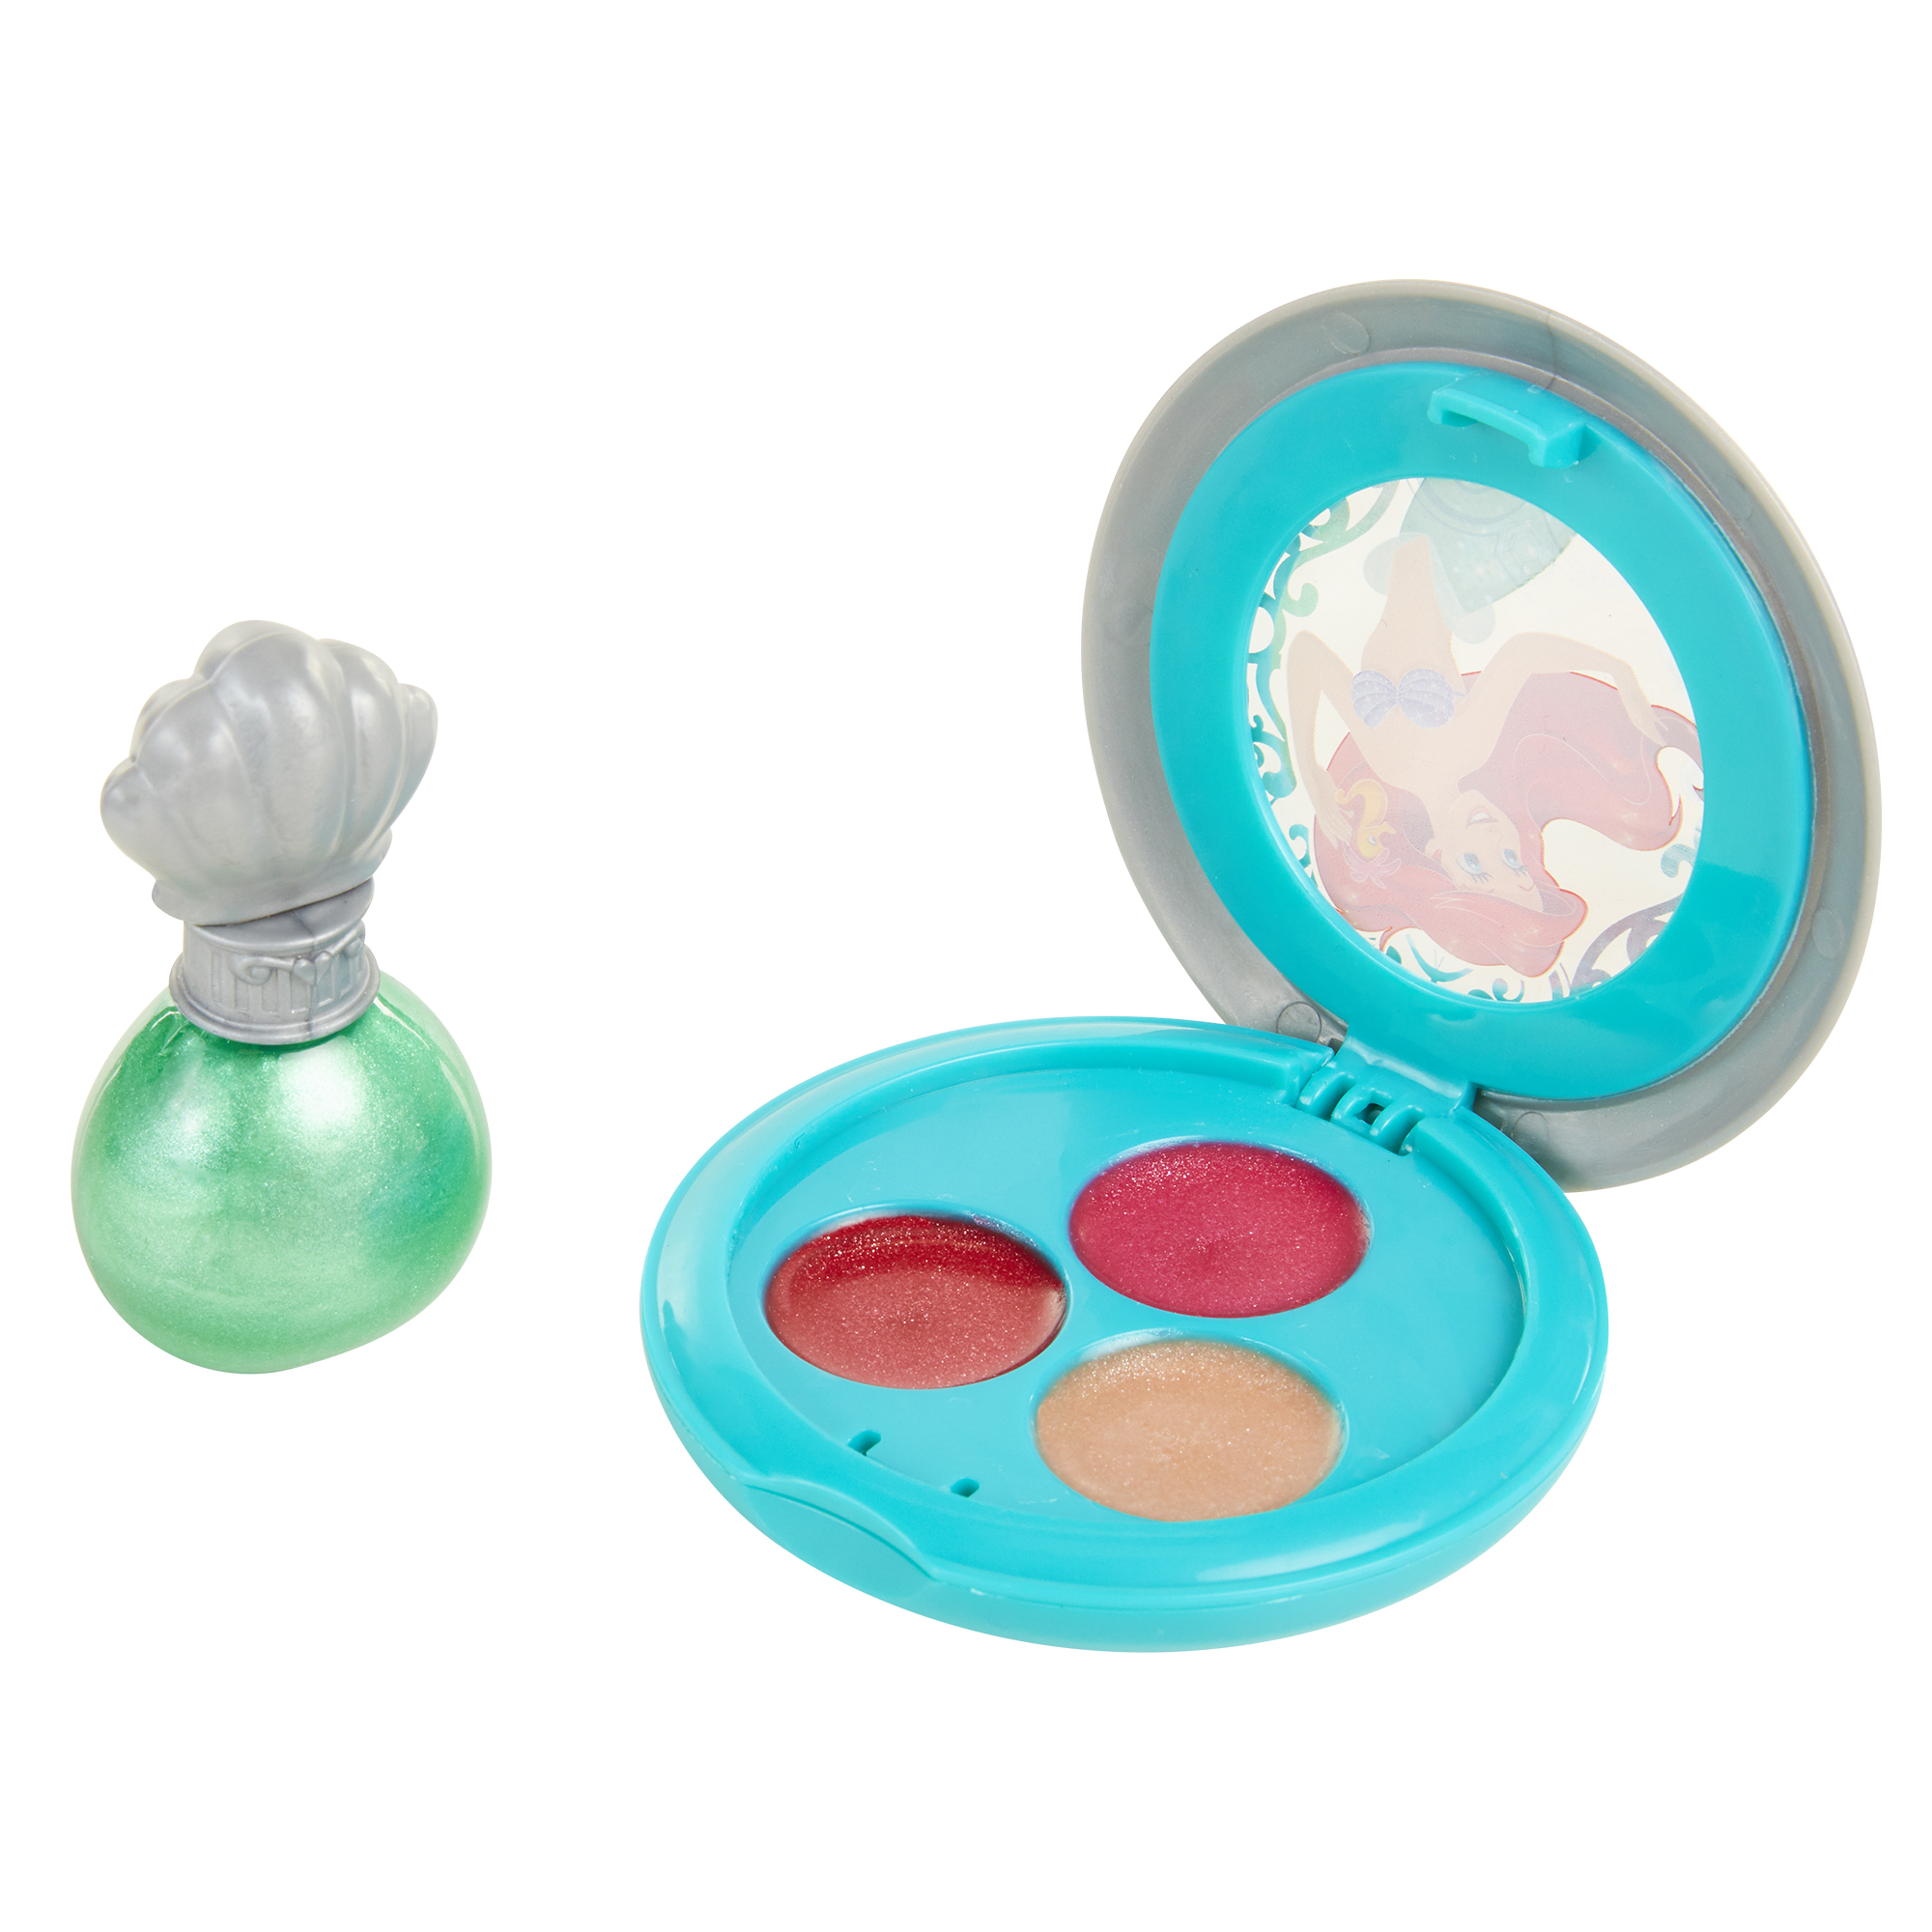 Ariel Nail Polish and Lip Shimmer Compact Disney Princess